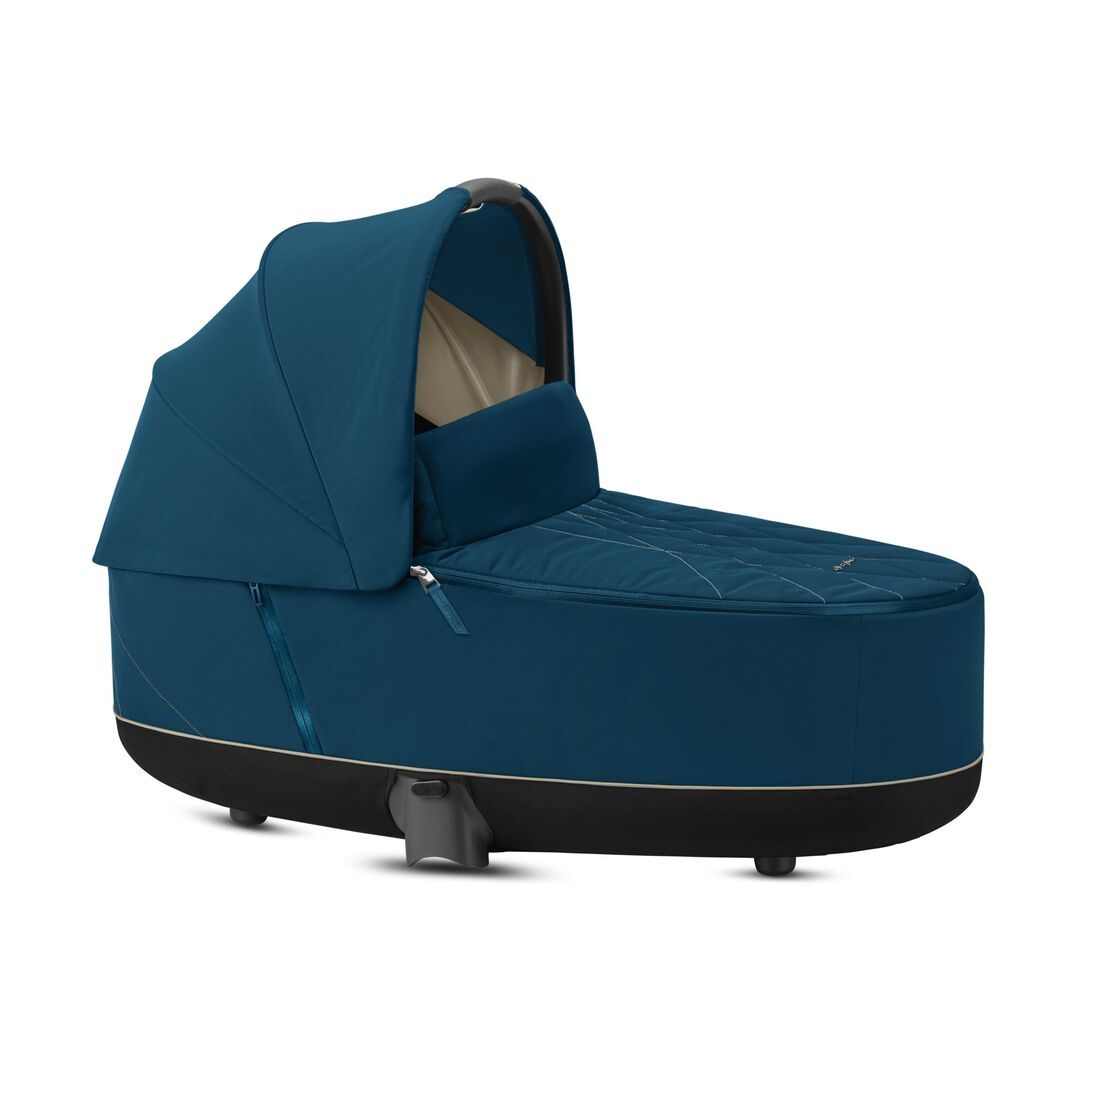 CYBEX Priam Lux Carry Cot - Mountain Blue in Mountain Blue large Bild 1